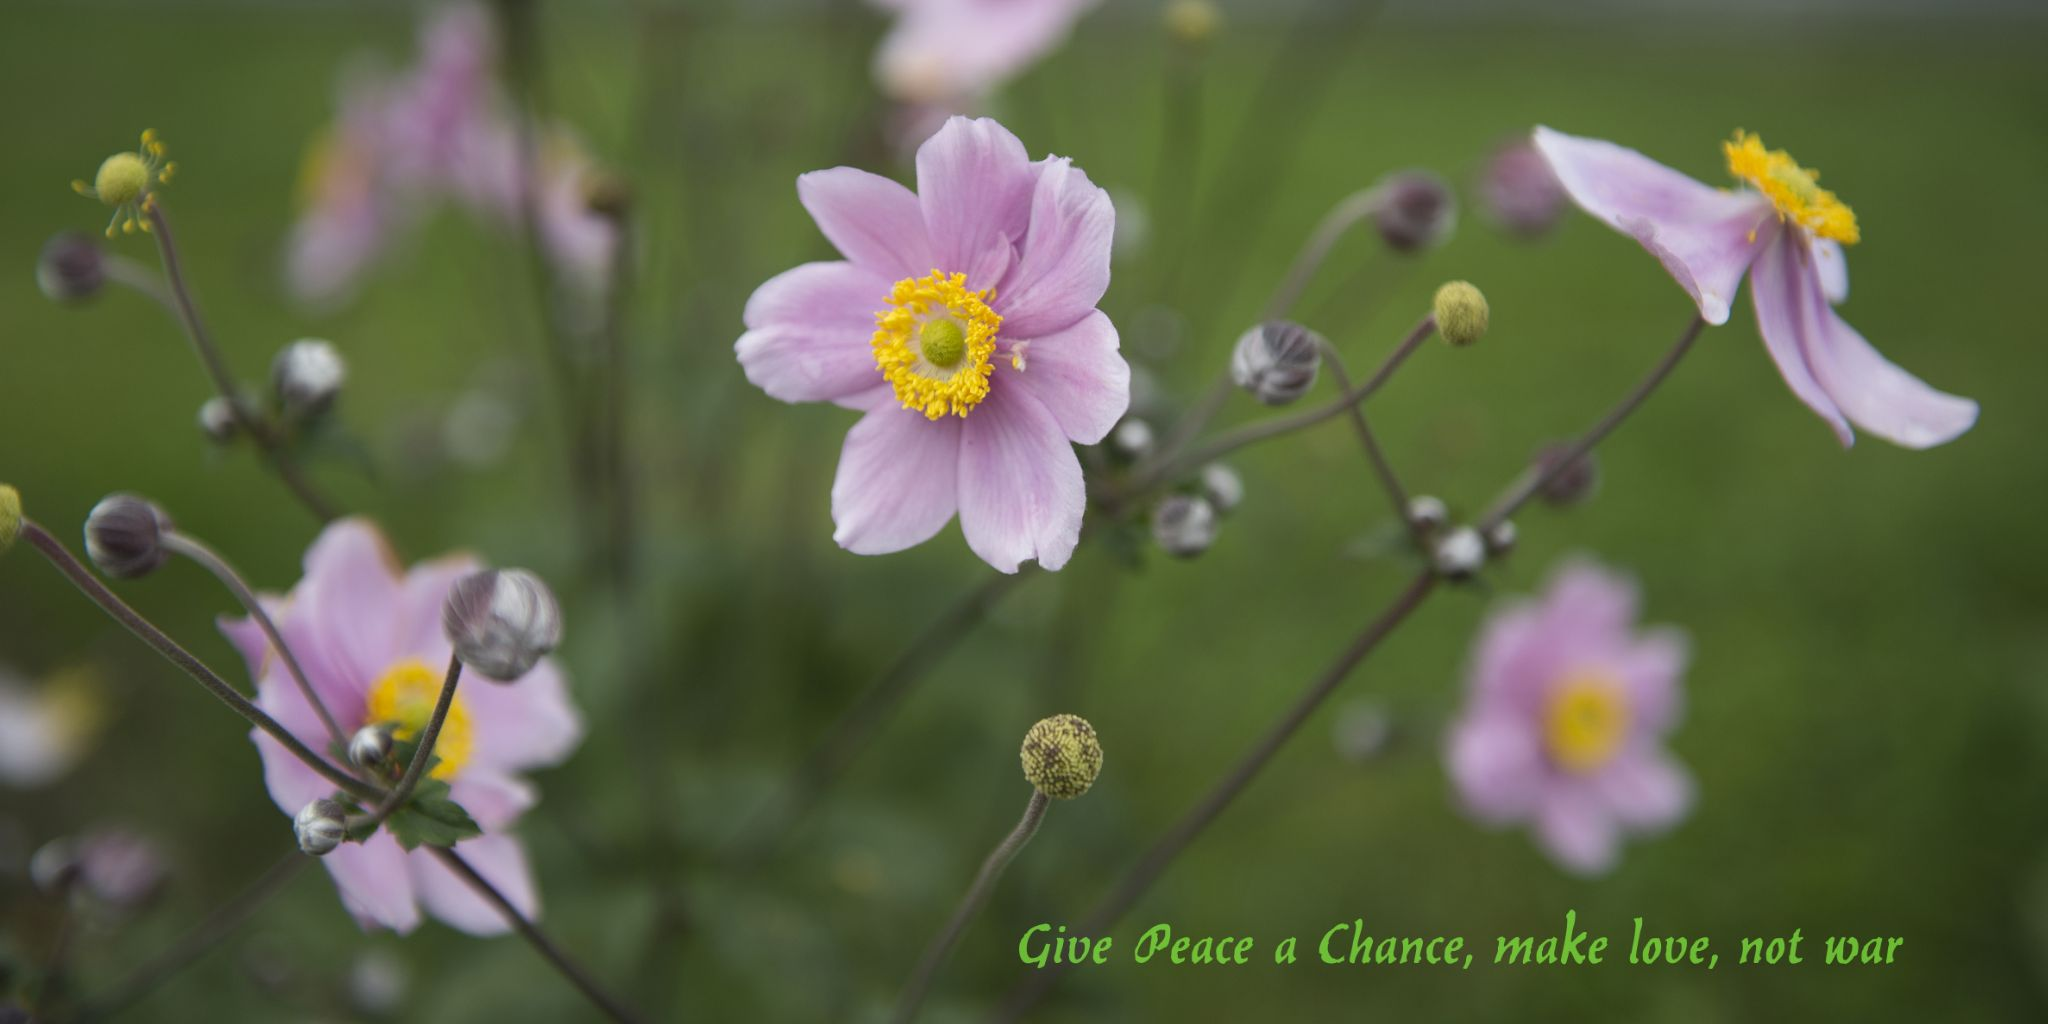 Give peace a chance by juergenfreymann